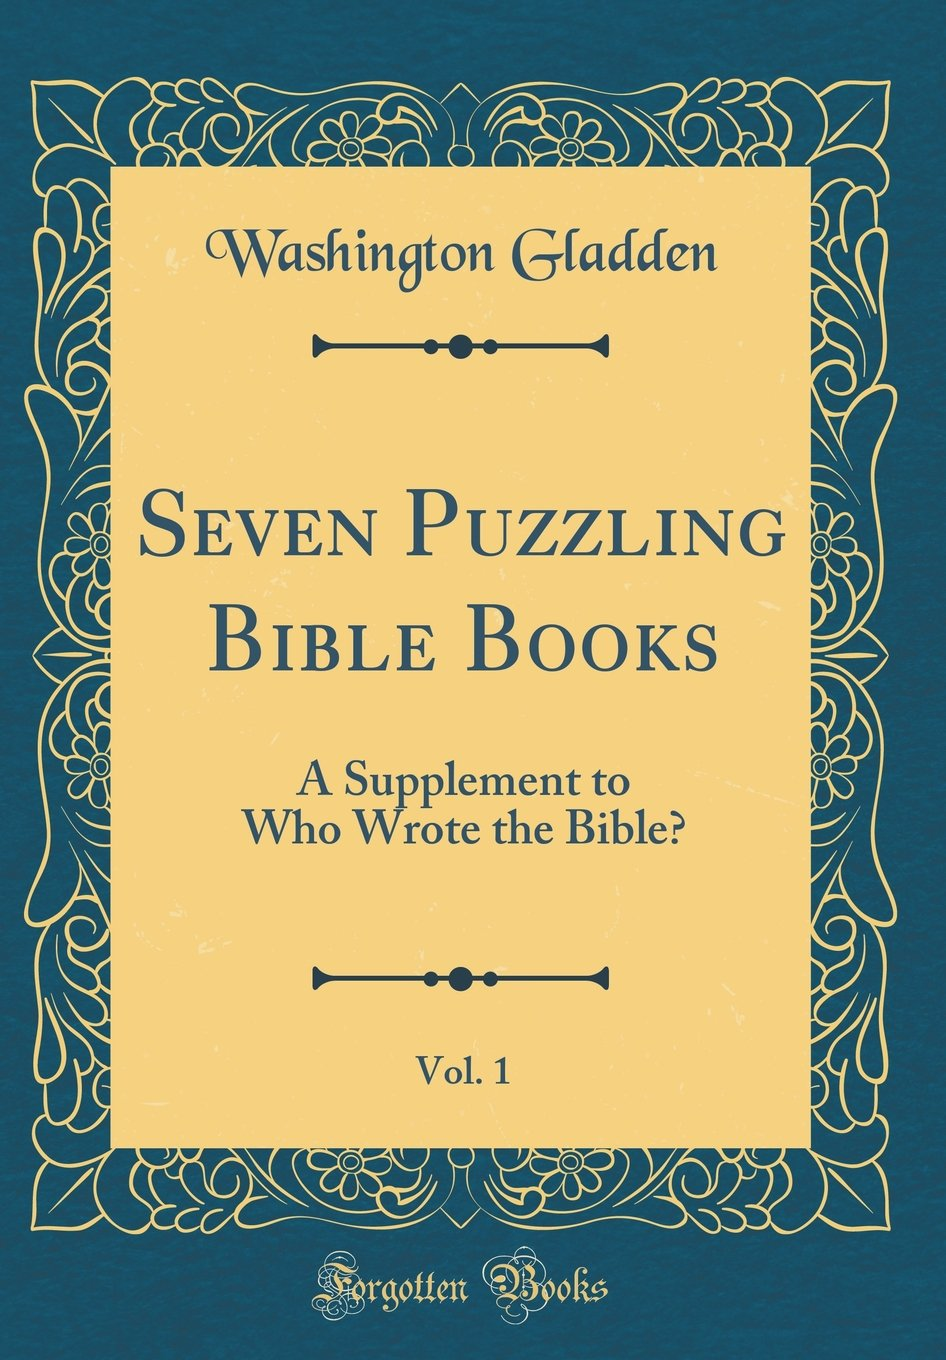 Seven Puzzling Bible Books, Vol. 1: A Supplement to Who Wrote the Bible? (Classic Reprint) pdf epub